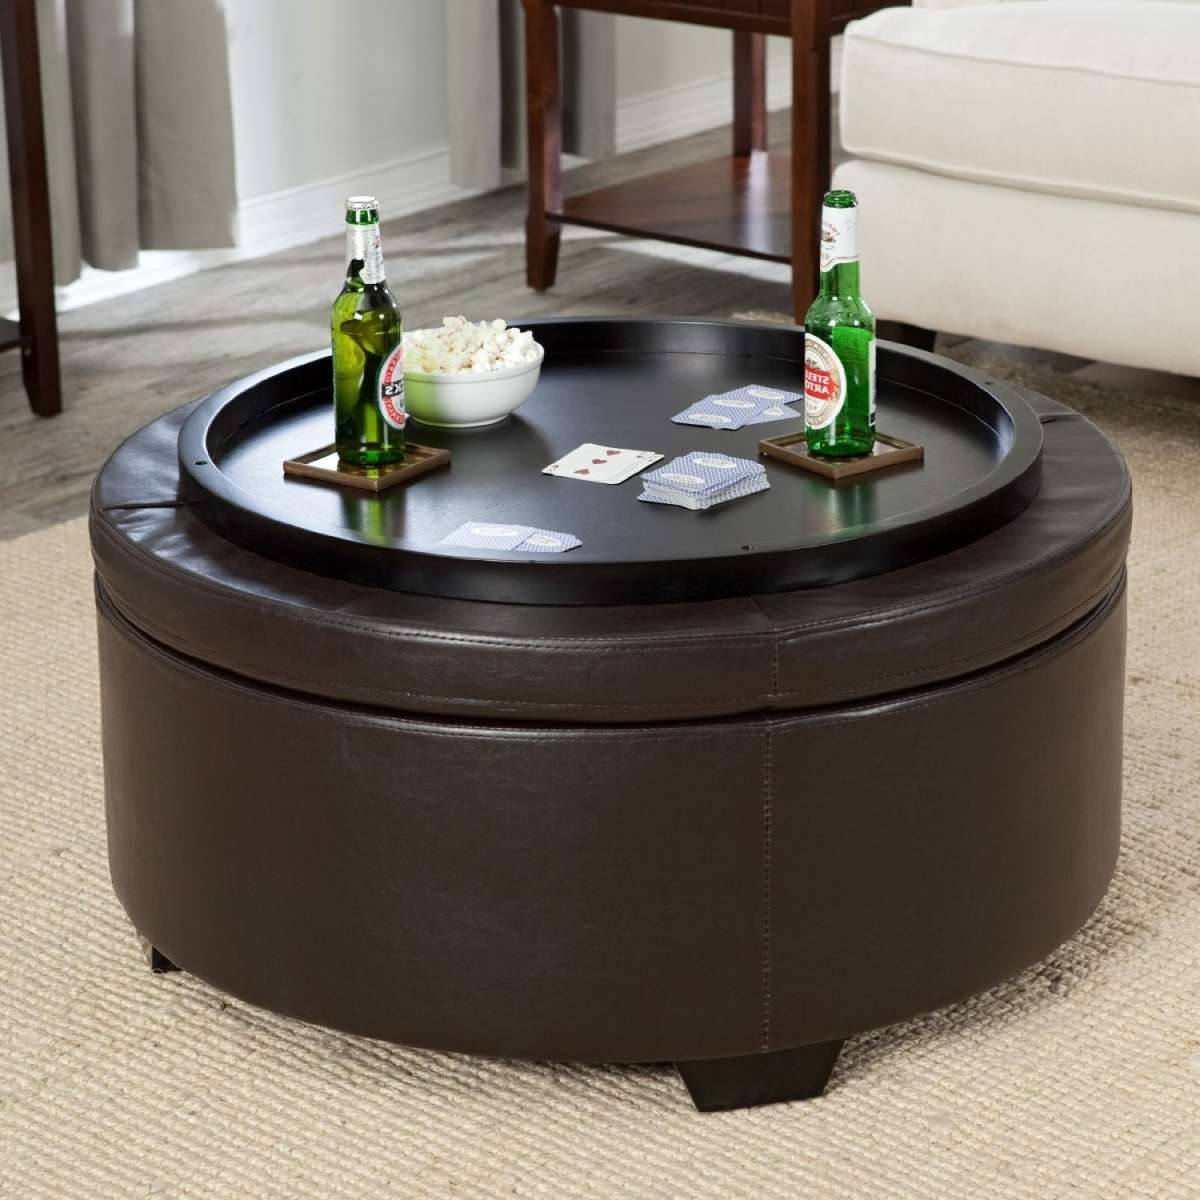 Leather Storage Ottoman Coffee Table — Home Design Ideas Intended For 2018 Round Storage Coffee Tables (View 20 of 20)